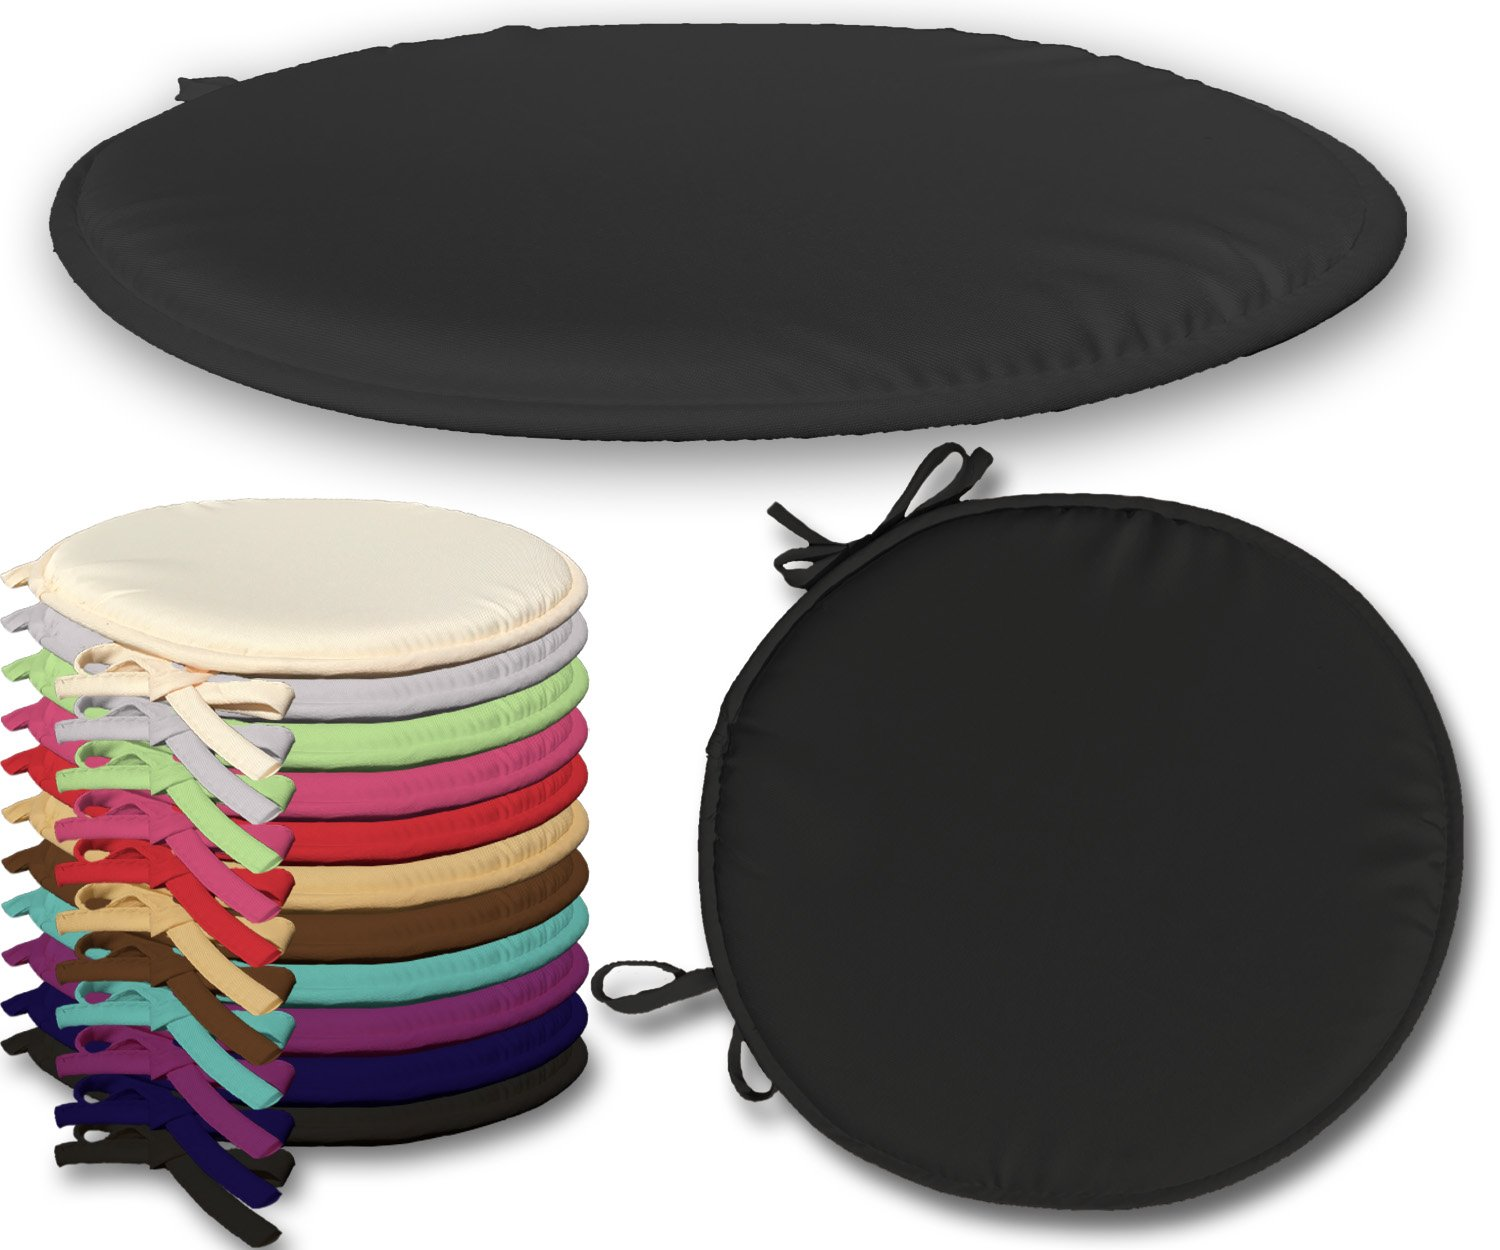 Textile.Plus ® 2 X Chair Padded Seat Pads Cushion With Ties 38 x 38 x 2Cm (Chocolate)